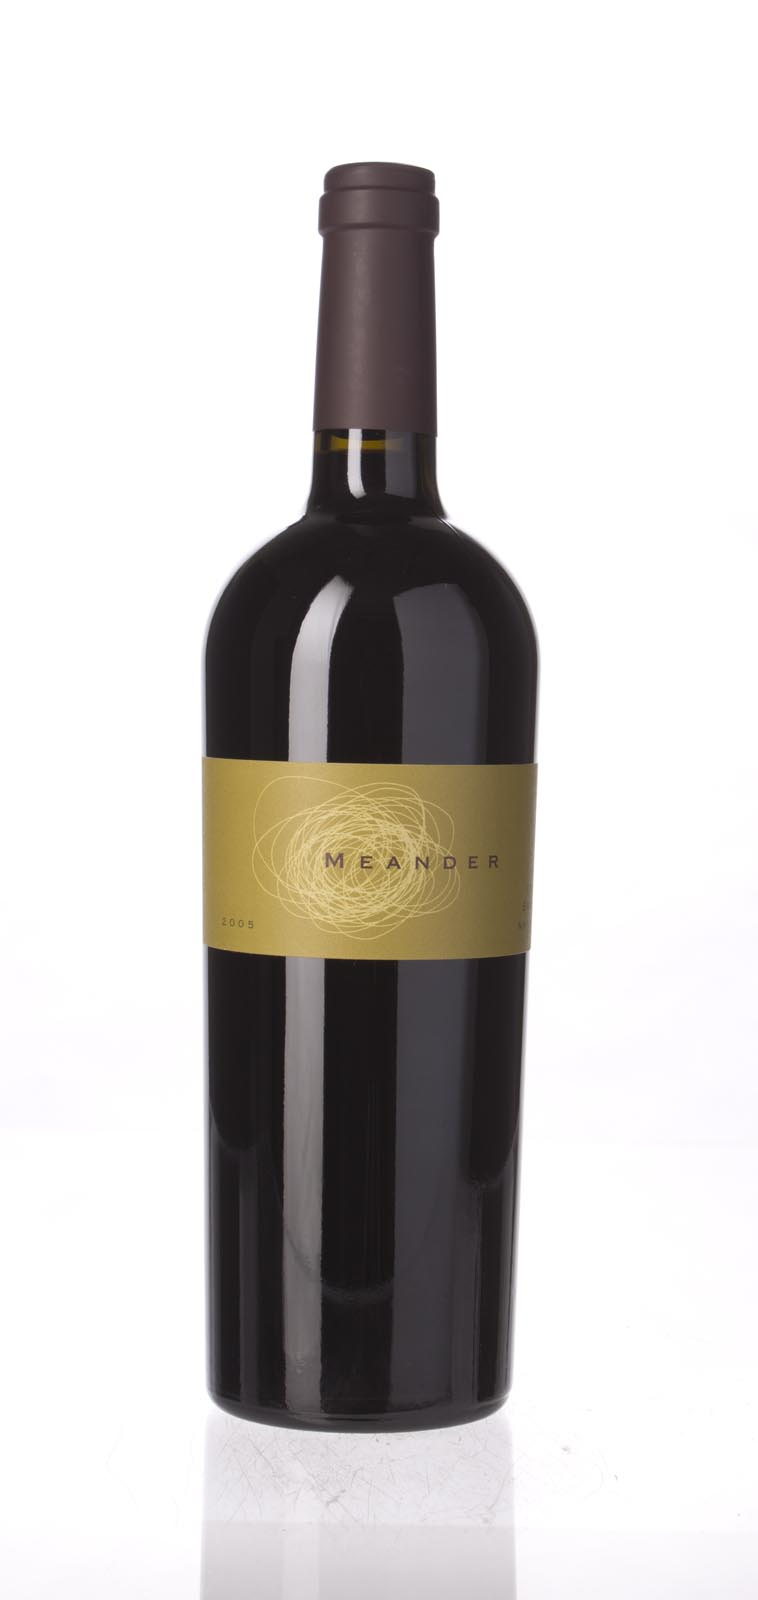 Meander Cabernet Sauvignon Napa Valley 2005, 750mL () from The BPW - Merchants of rare and fine wines.